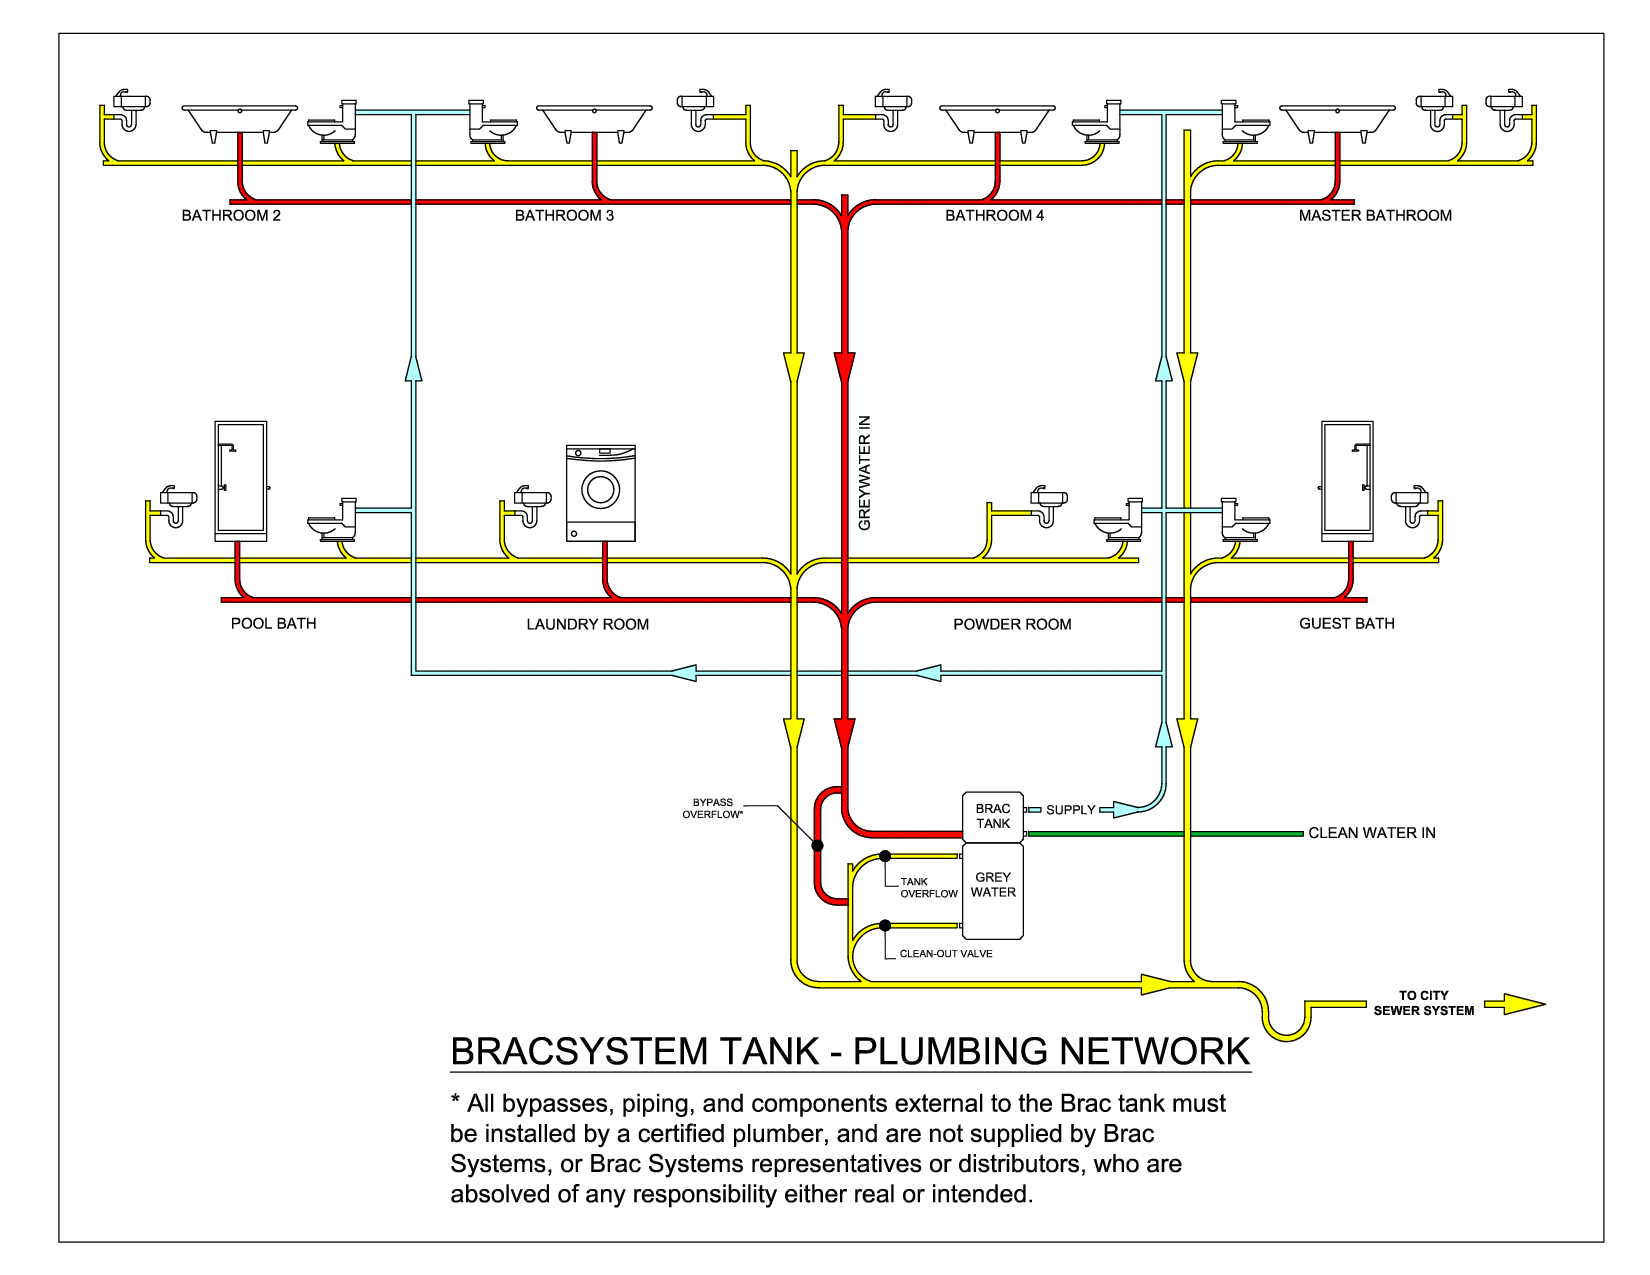 6a10db7de24186000f000aa7eded67b2 mobile home plumbing systems plumbing network diagram pdf Mobile Home Wiring Problems at webbmarketing.co